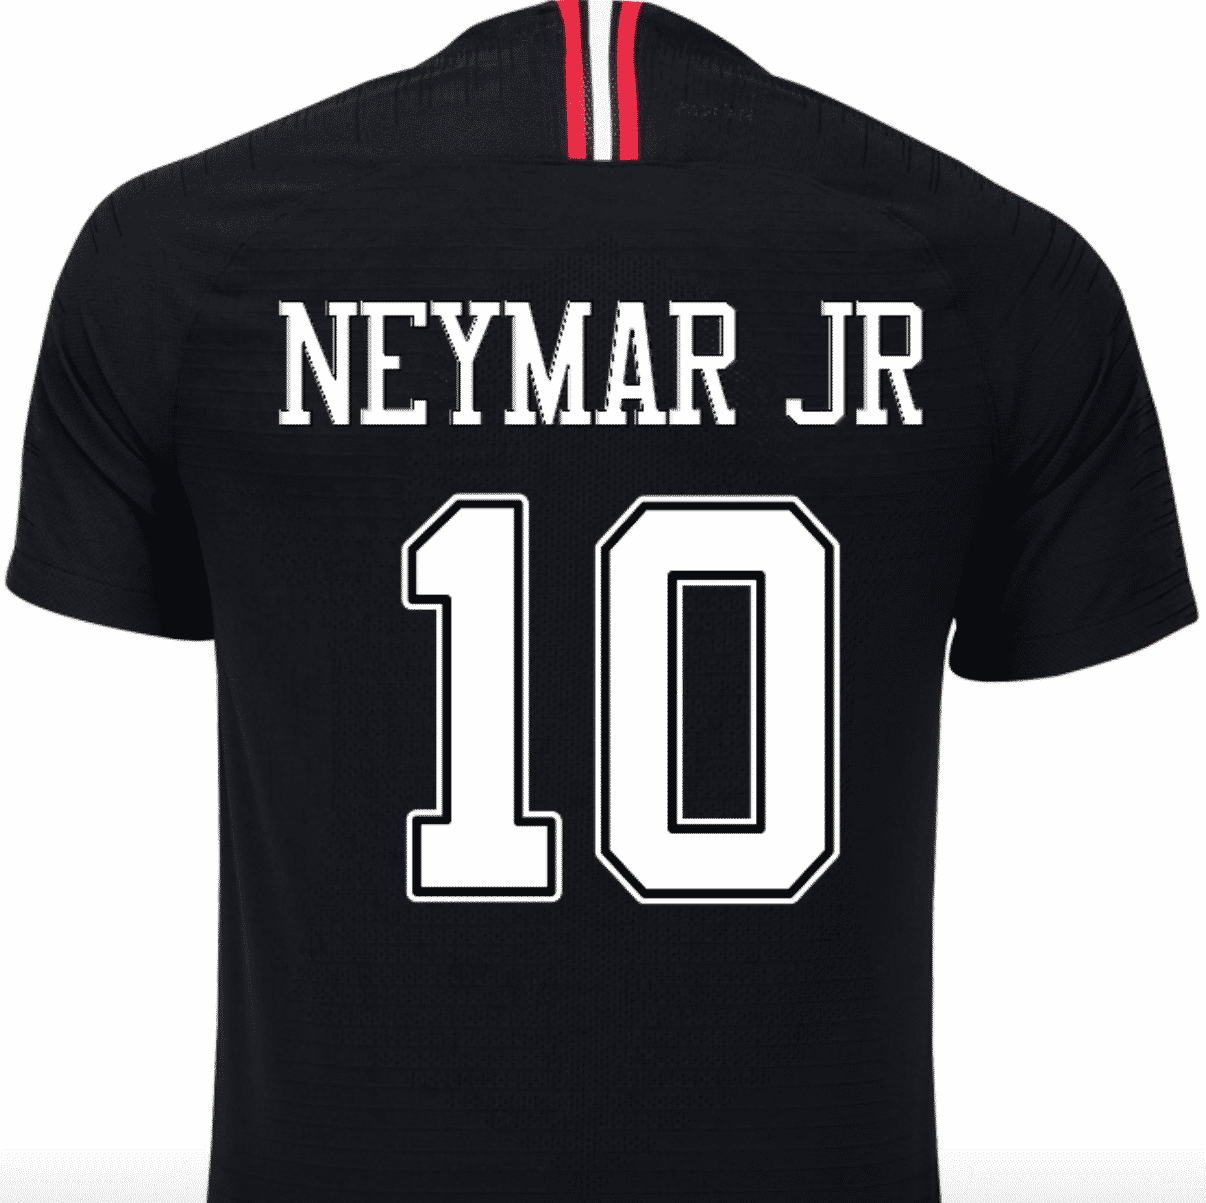 flocage-neymar-10-maillot-paris-saint-germain-third-ligue-des-champions-jordan